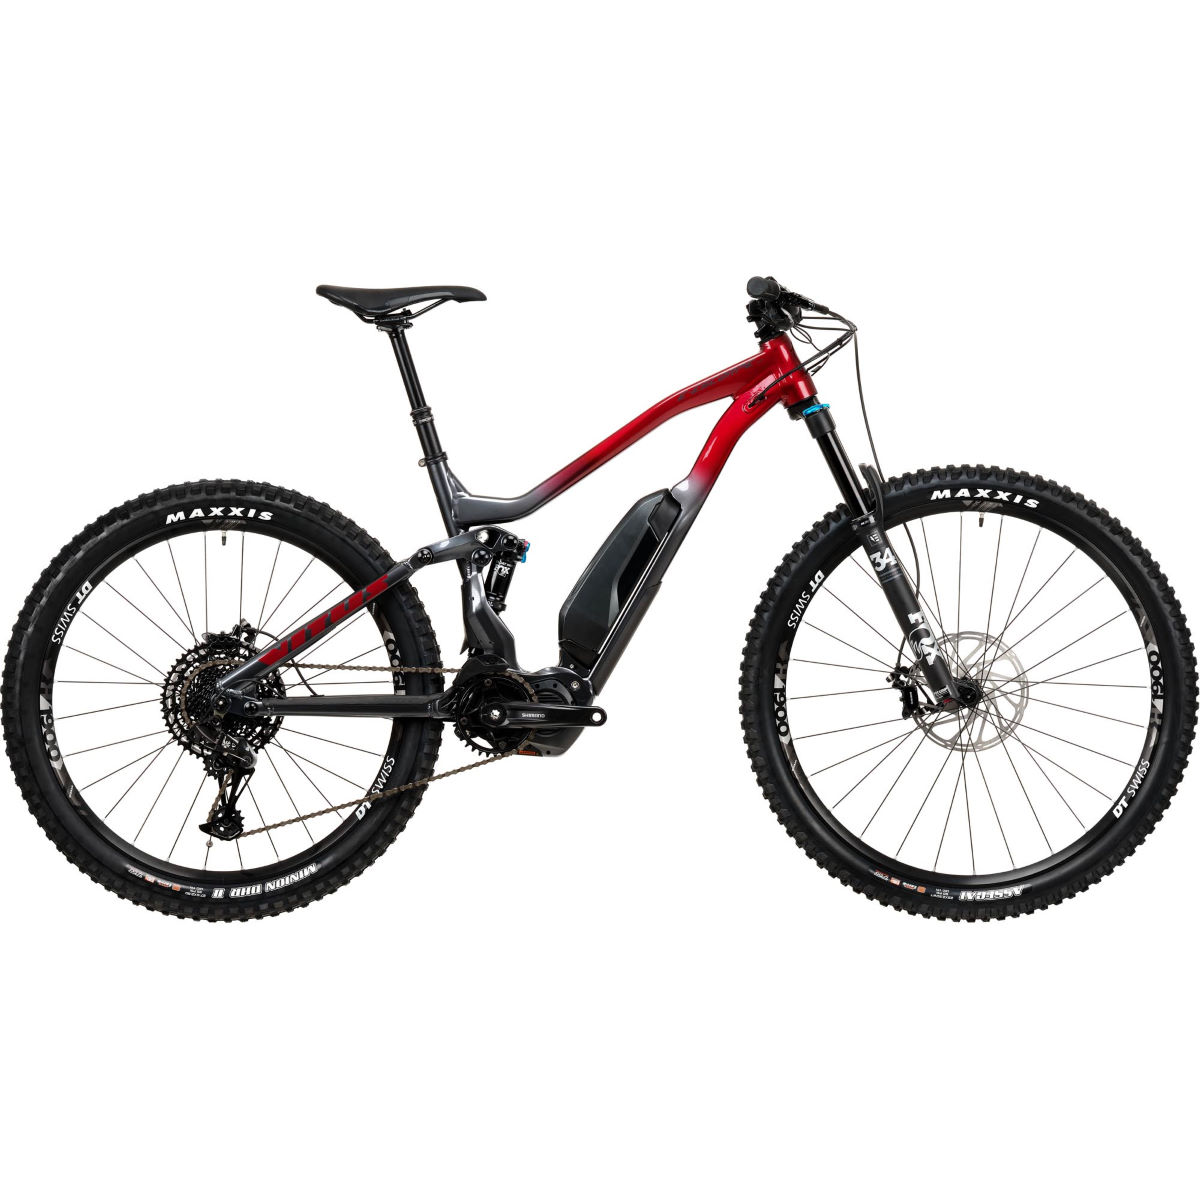 Vitus Vitus E-Escarpe VR E-Bike (SX Eagle 1x12 - 2020)   Electric Mountain Bikes